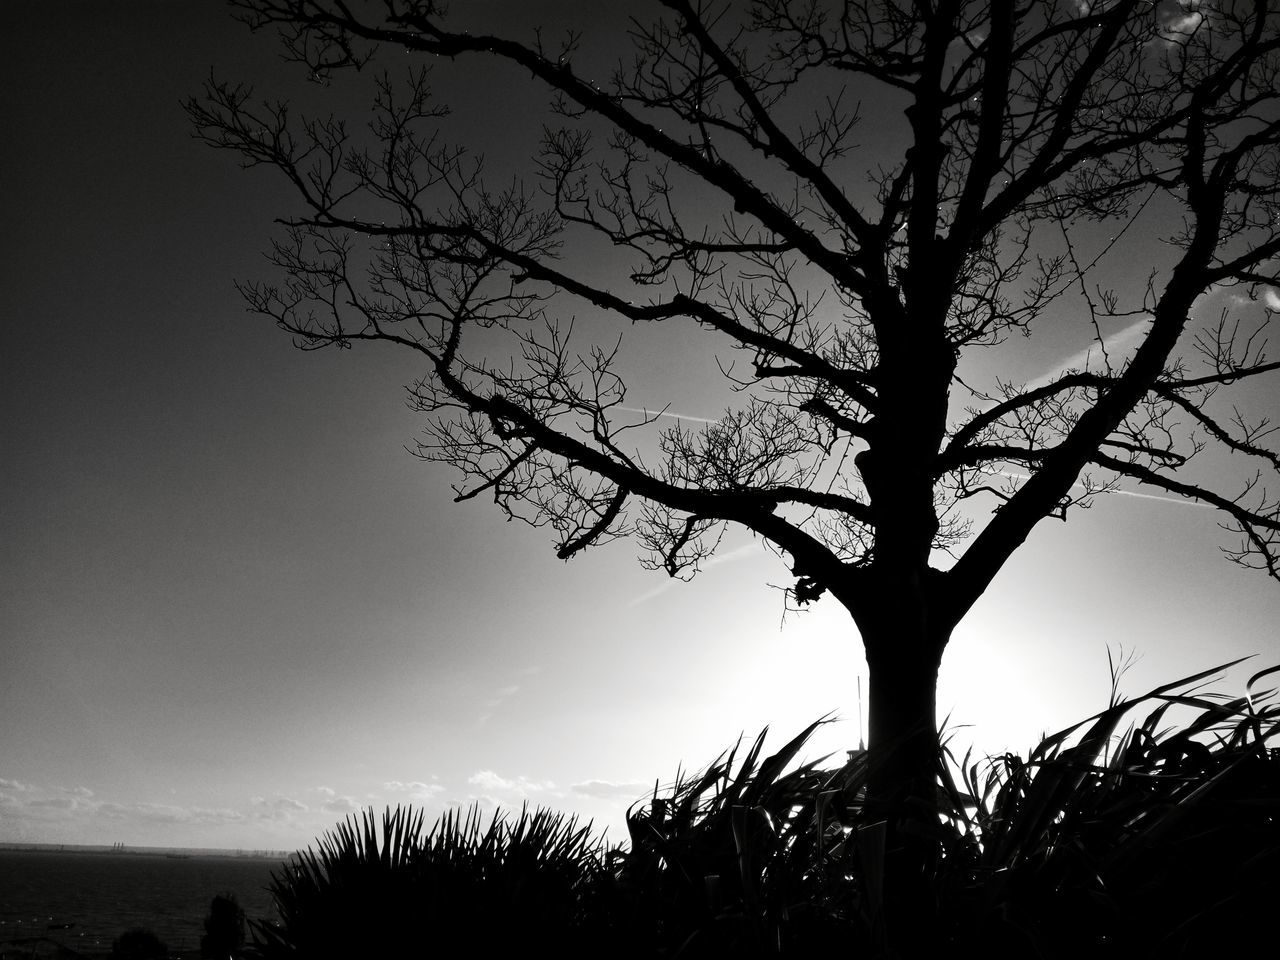 tree, tranquility, beauty in nature, nature, sky, bare tree, tranquil scene, silhouette, branch, scenics, outdoors, no people, landscape, low angle view, tree trunk, growth, lone, day